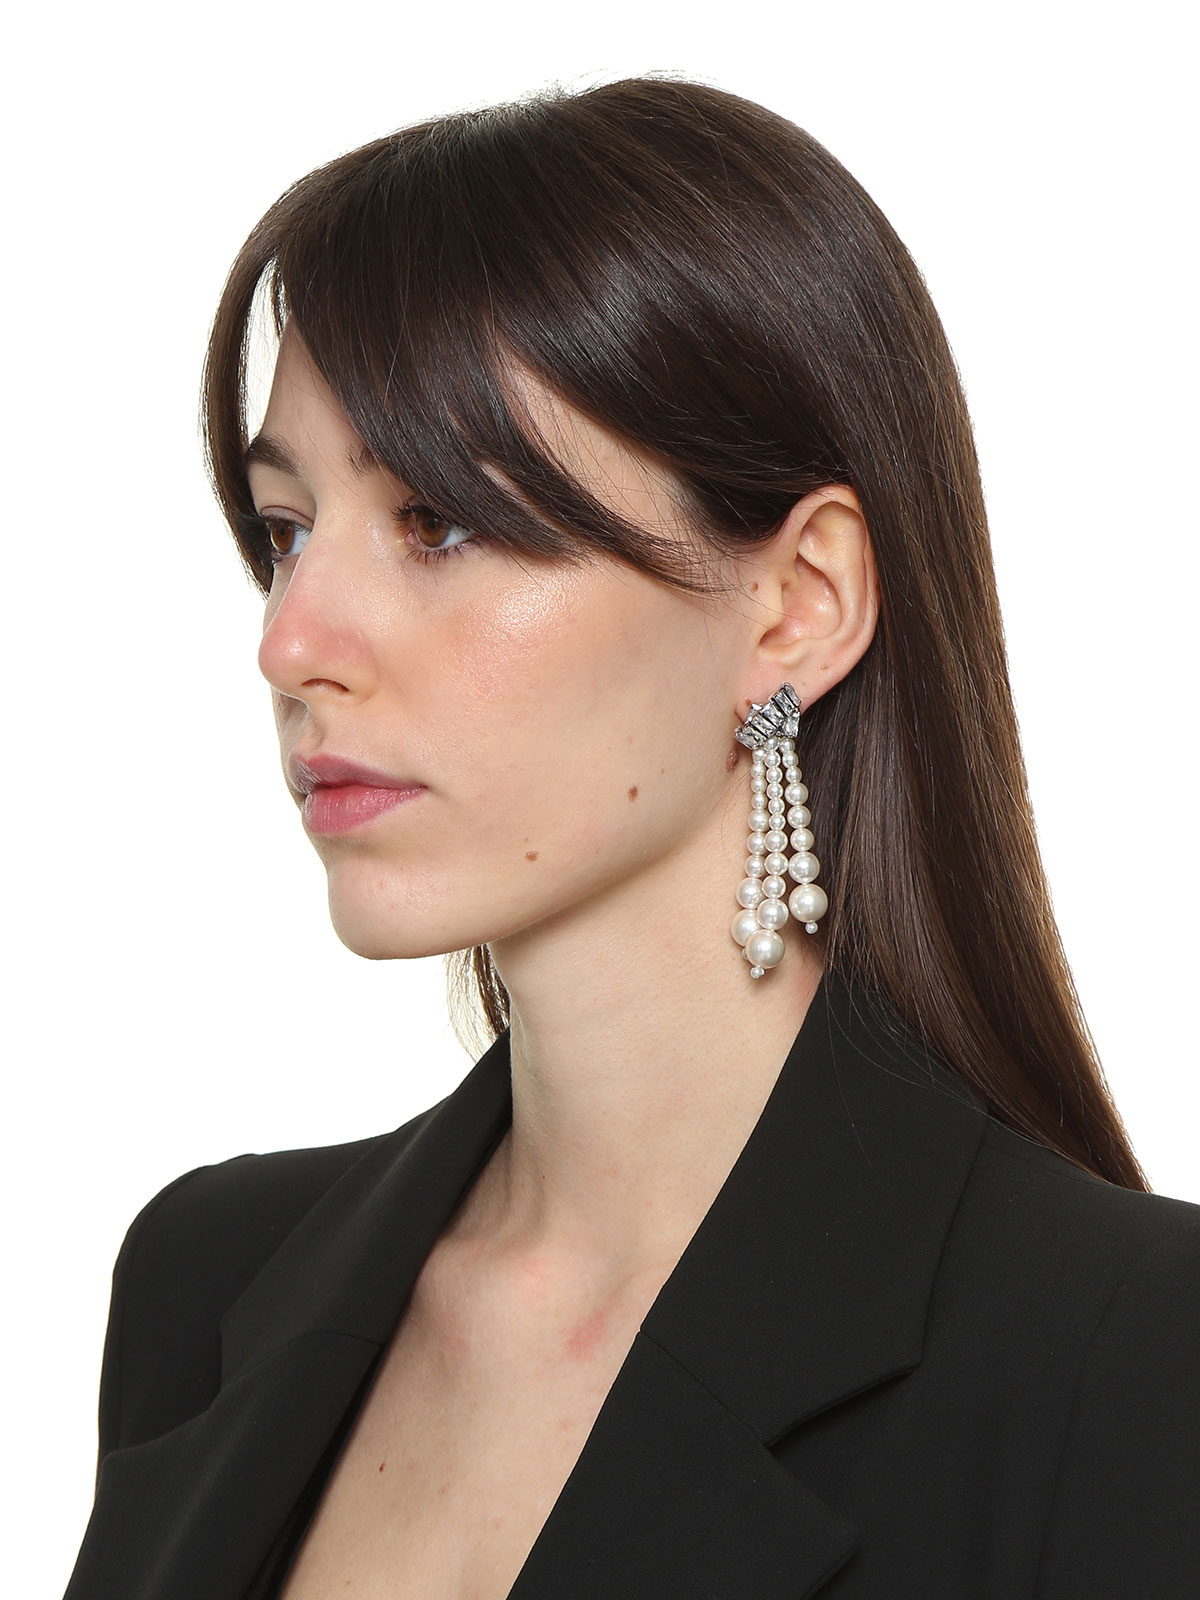 Crystal earrings with pendent pearls